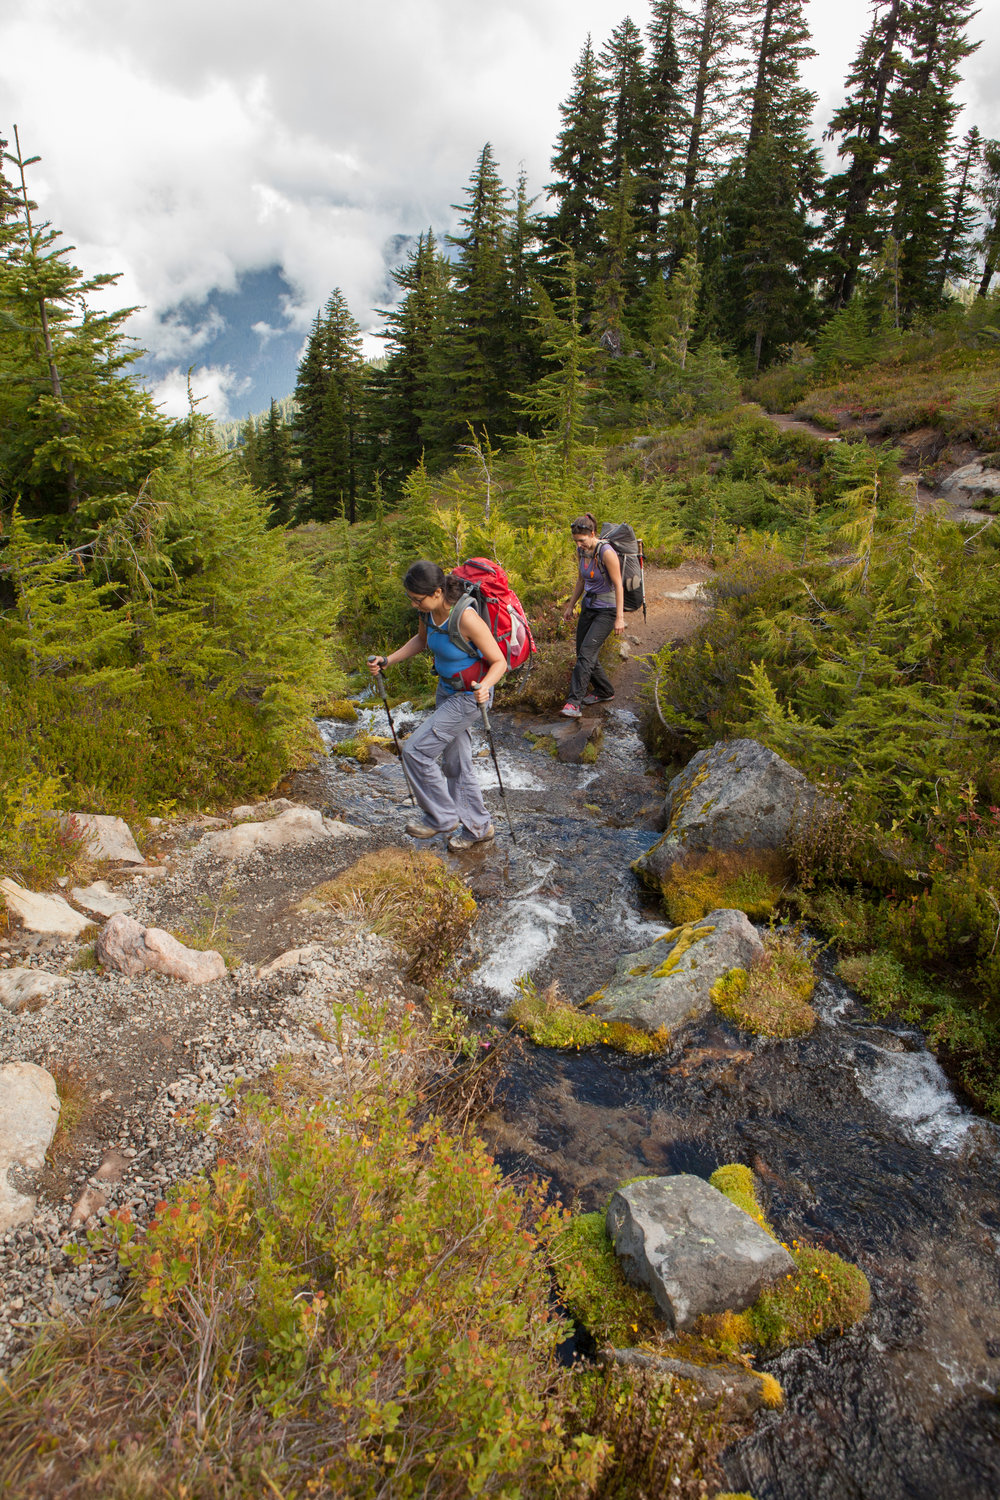 Backpackers cross a small stream on a loop hike through the Seattle Park section of Mount Rainier National Park in Washington.